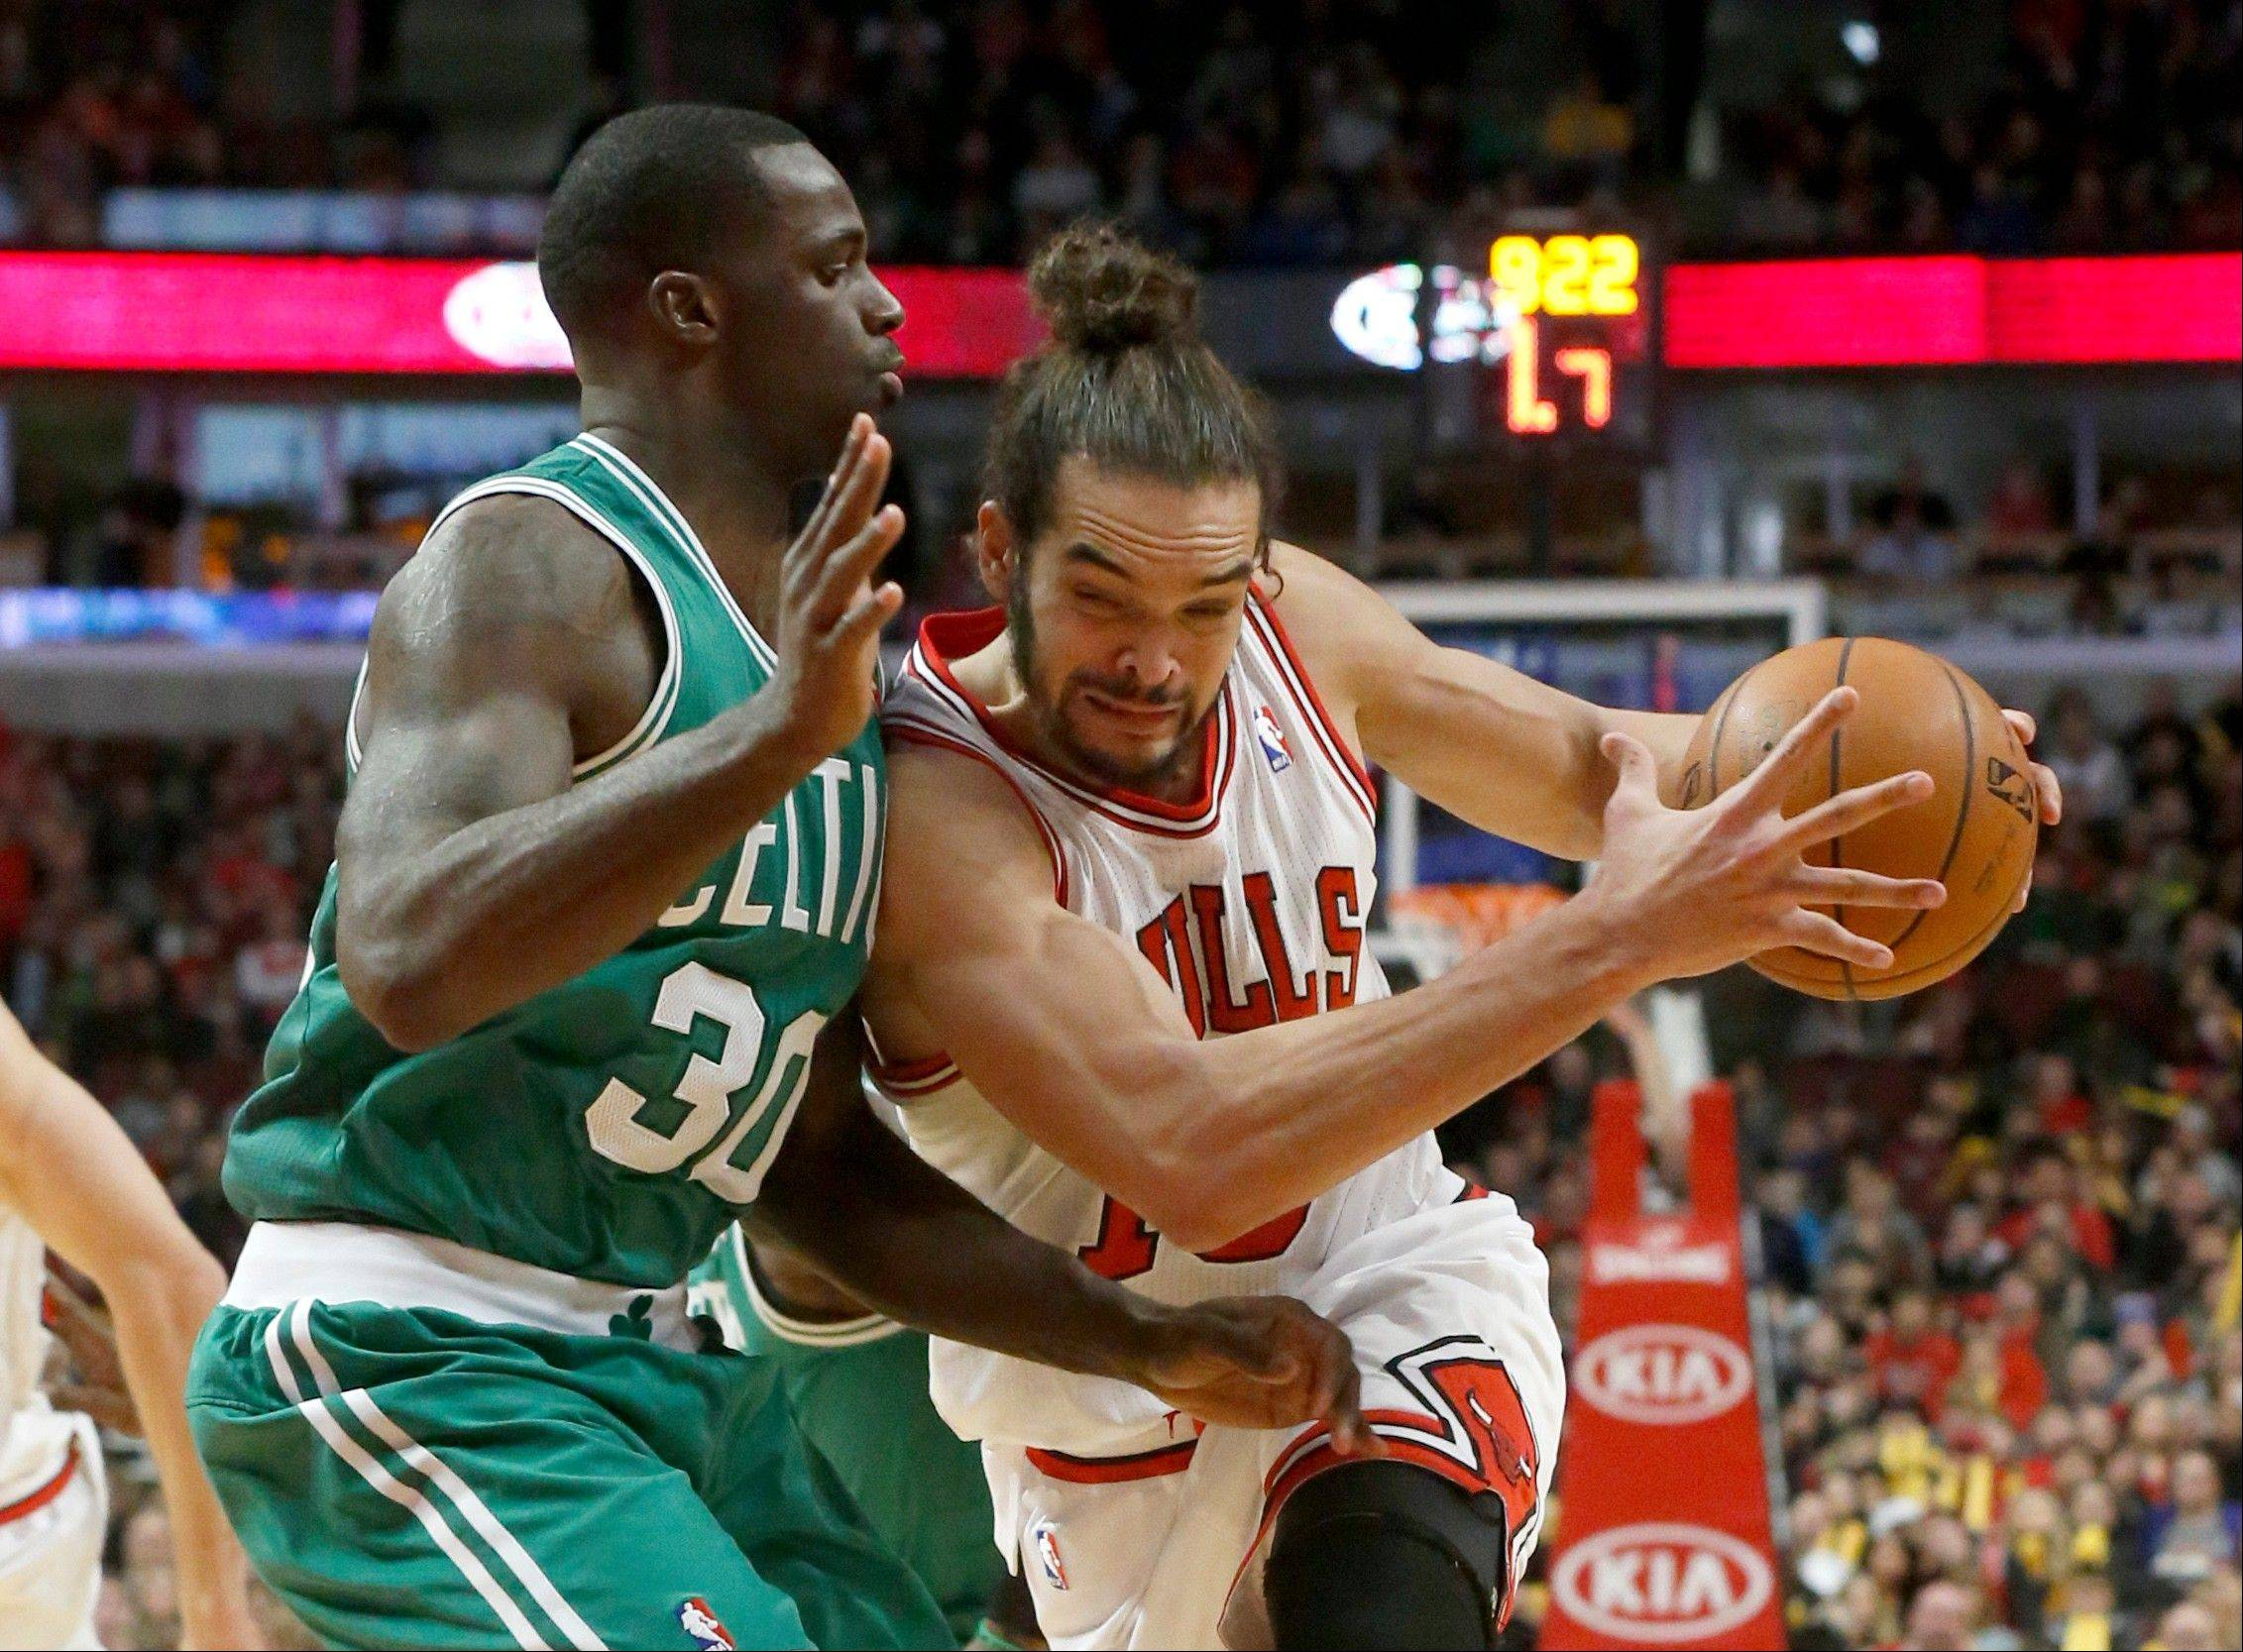 Bulls center Joakim Noah drives against Celtics forward Brandon Bass during the second half Thursday night. Noah finished 1 assist short of a triple-double.